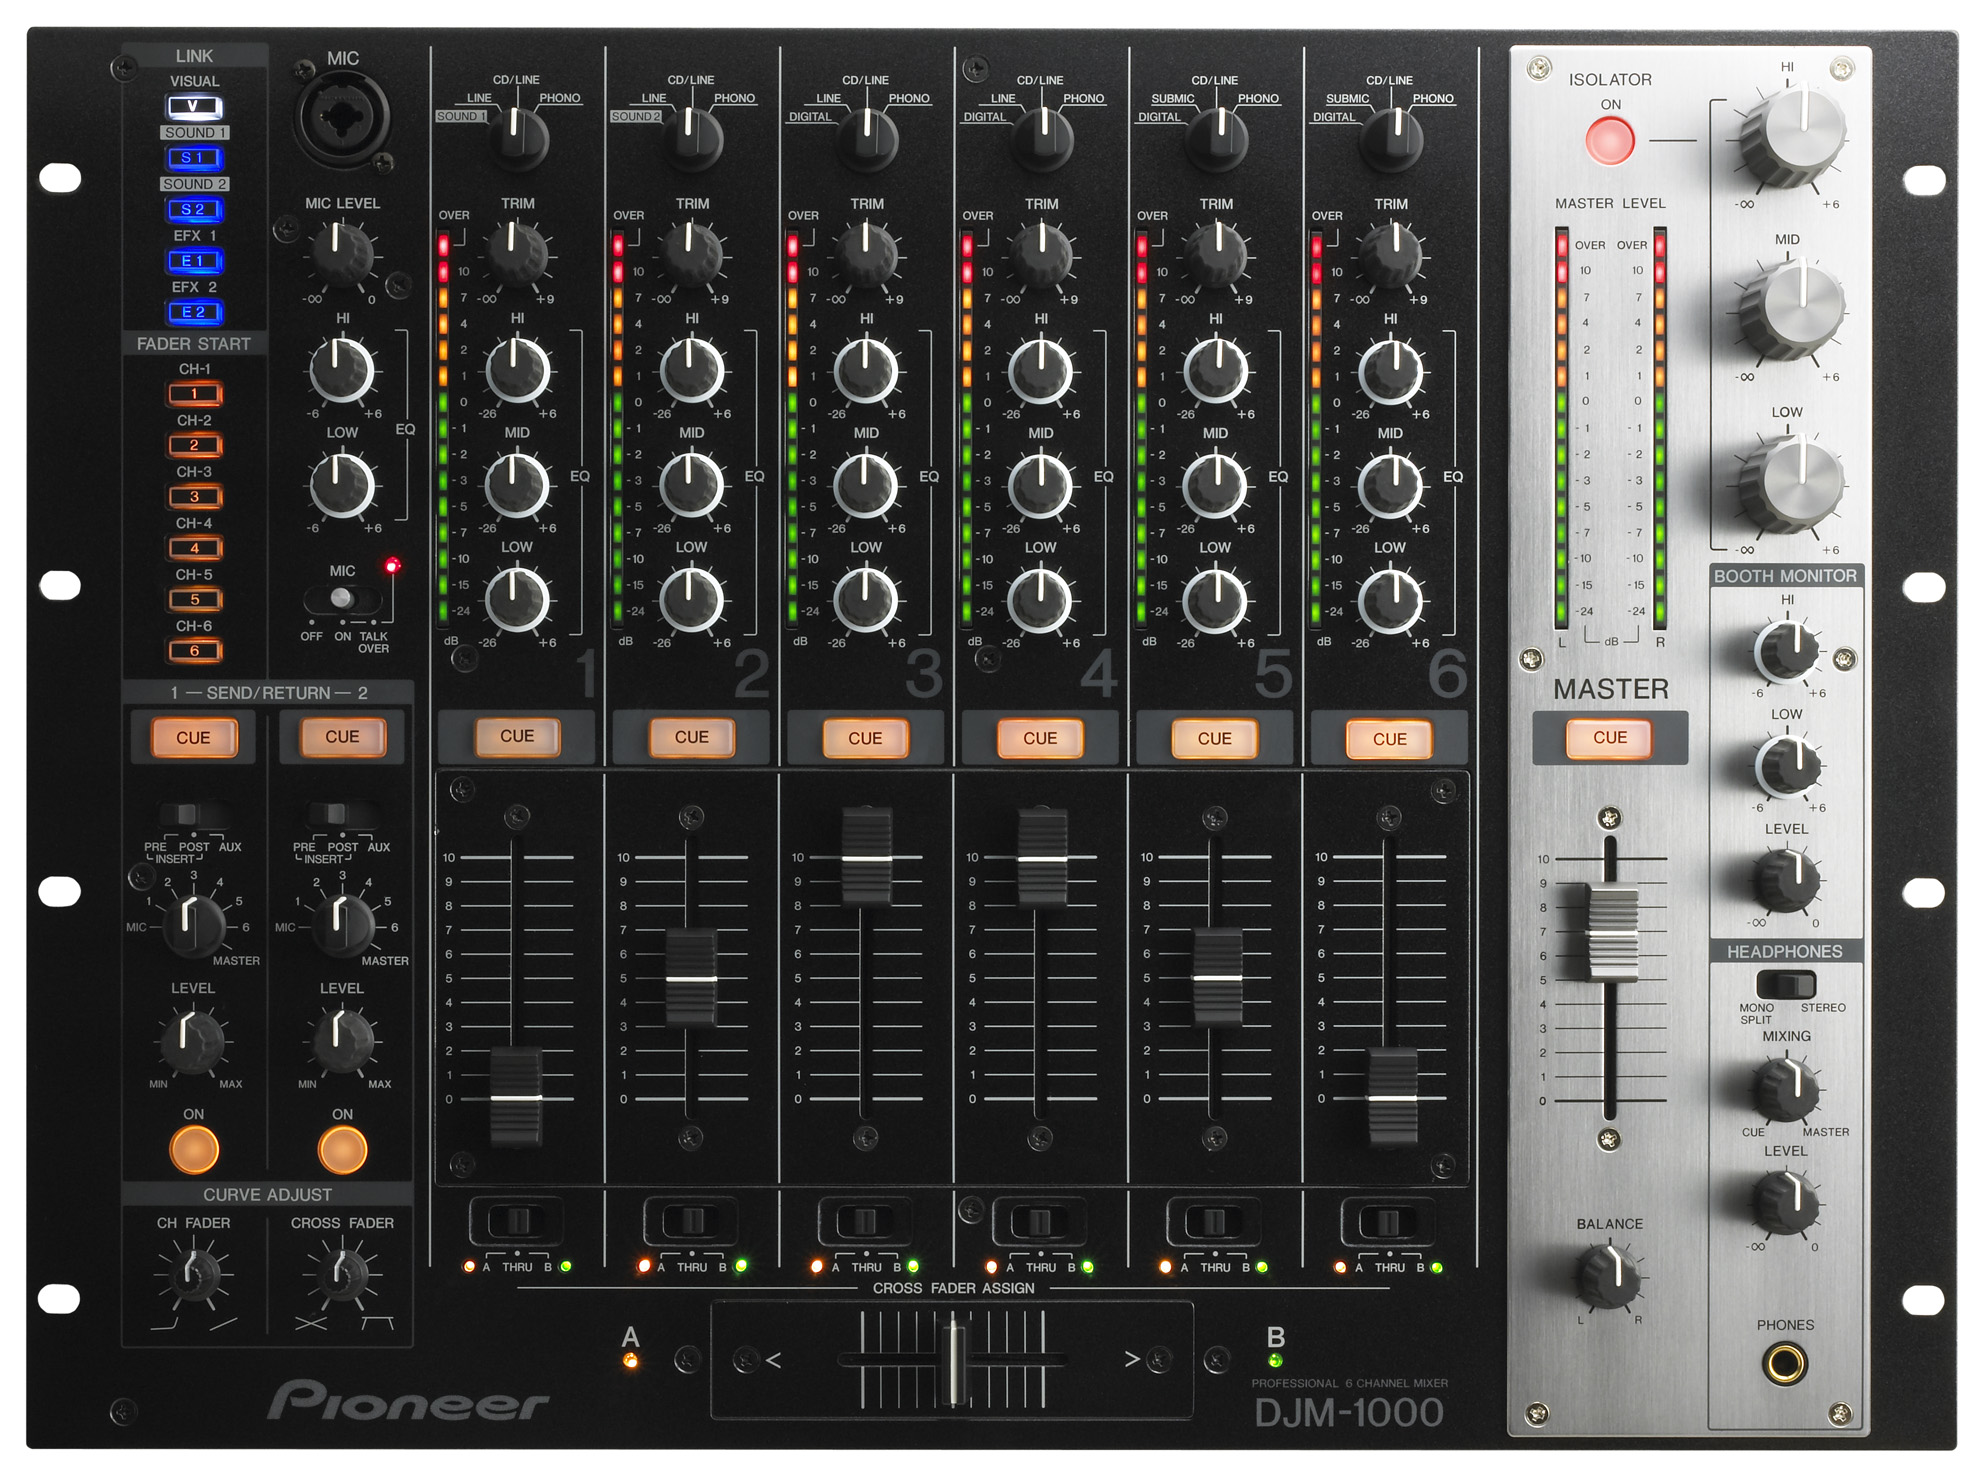 pioneer djm 1000 professional digital dj mixer new jsfrance. Black Bedroom Furniture Sets. Home Design Ideas